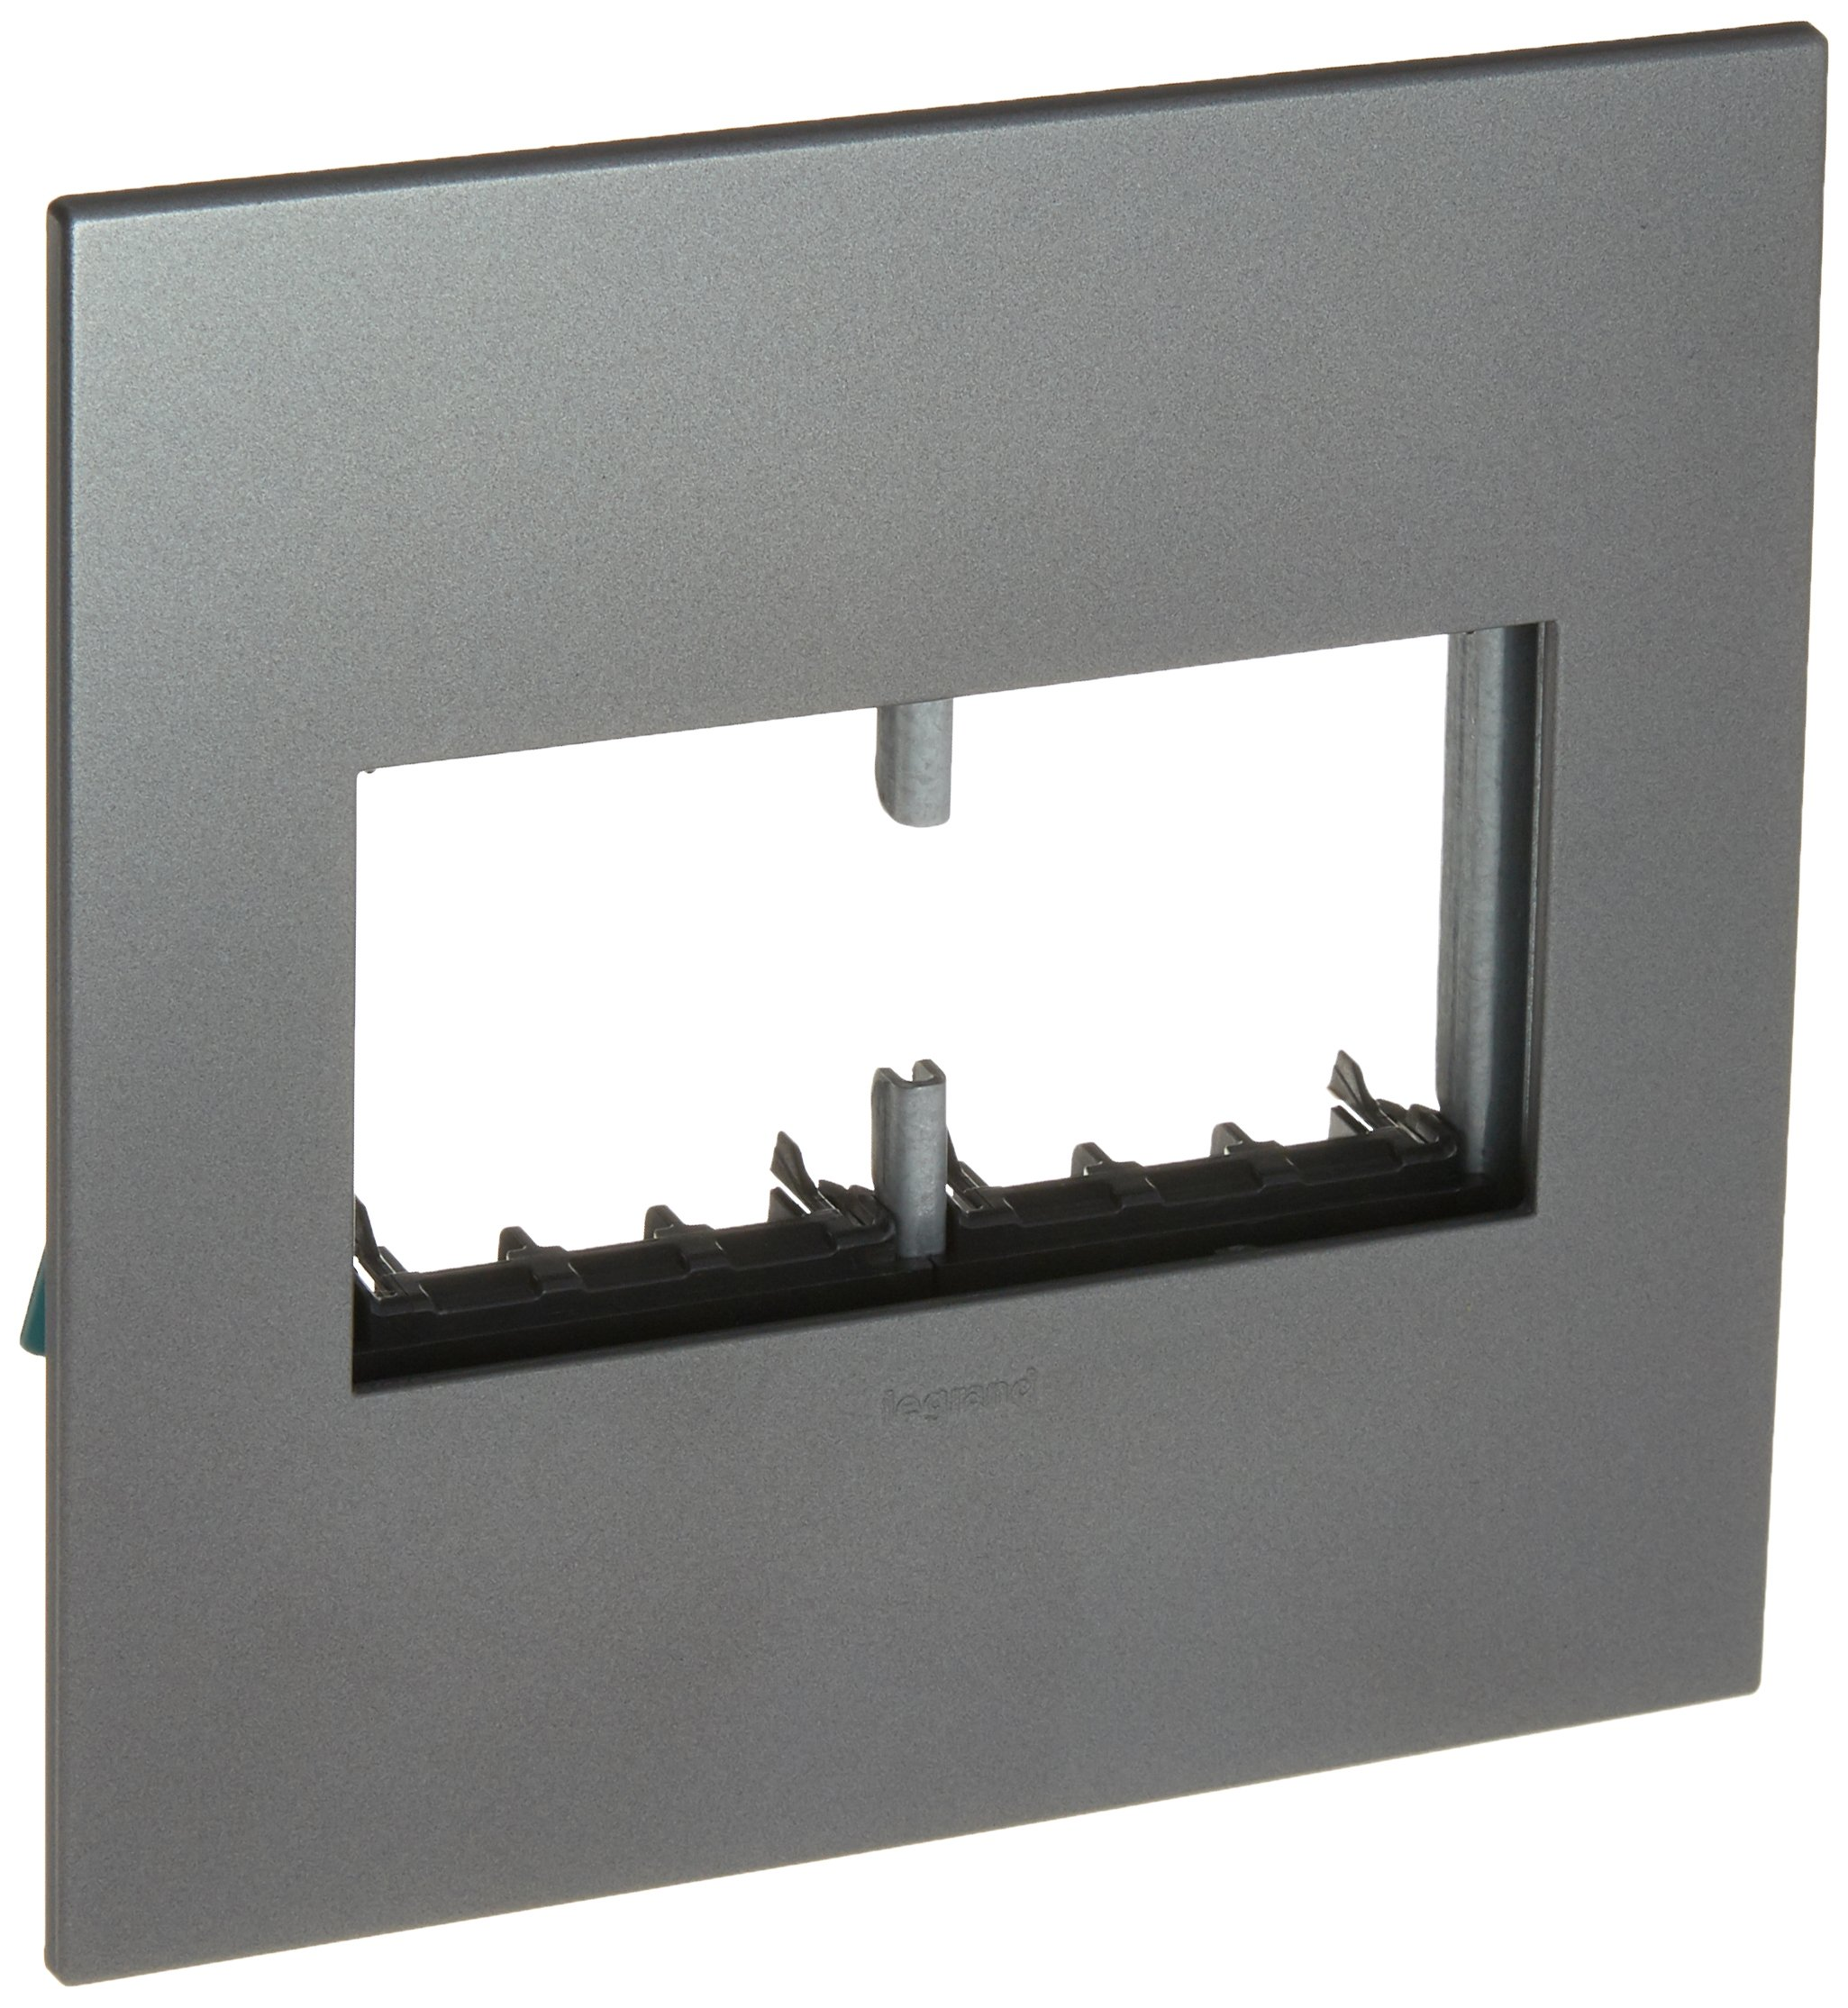 PASS & SEYMOUR AWP2GMG4 Adorne 2 Gang Magnesium Wall Plate by Pass & Seymour (Image #1)